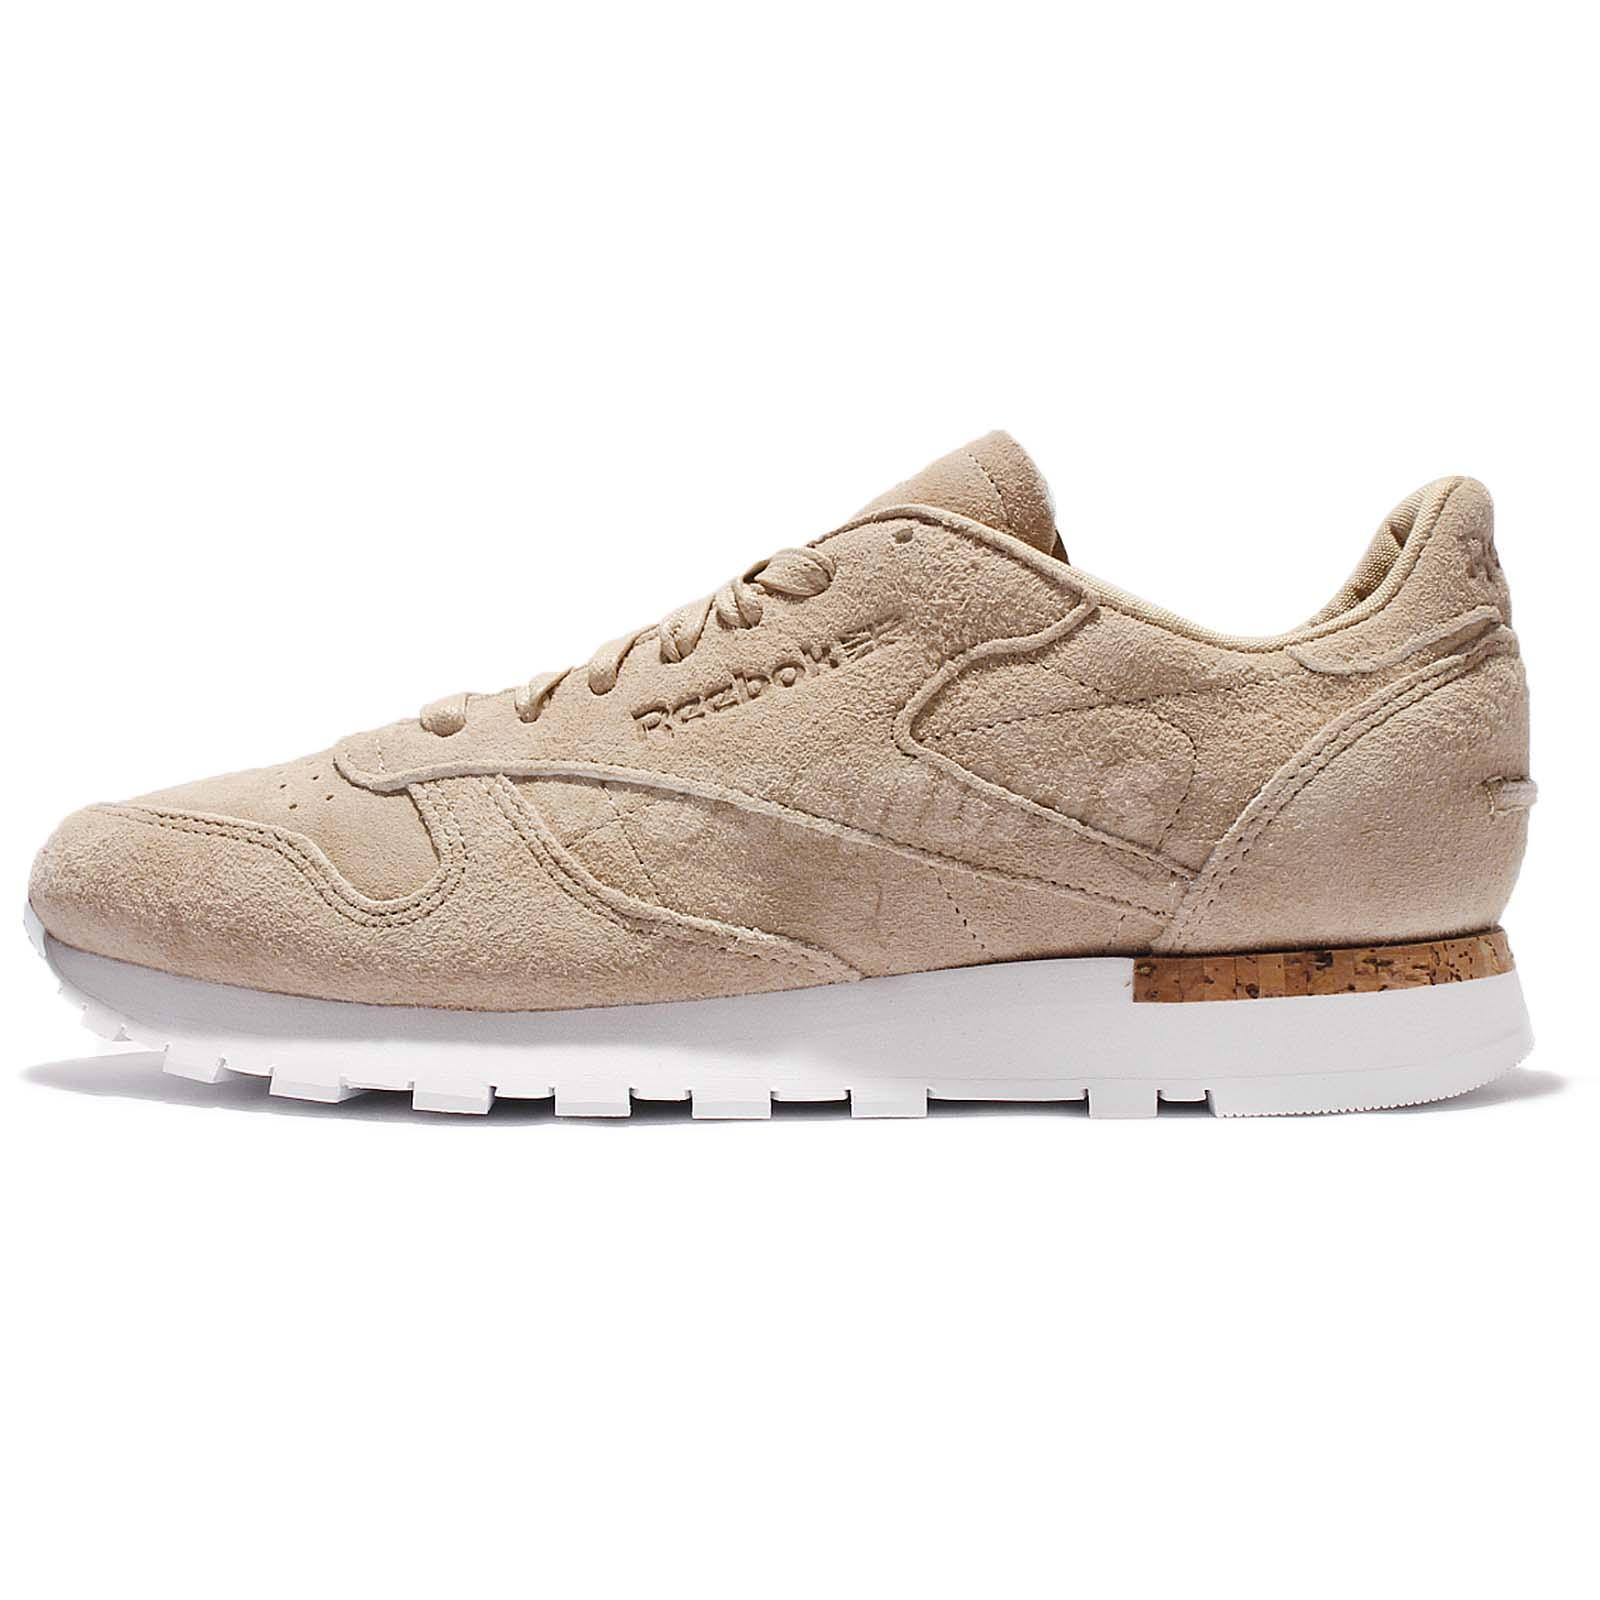 Reebok CL Leather LST Oatmeal Drift Wood Suede Men Casual Shoes Sneakers  BD1900